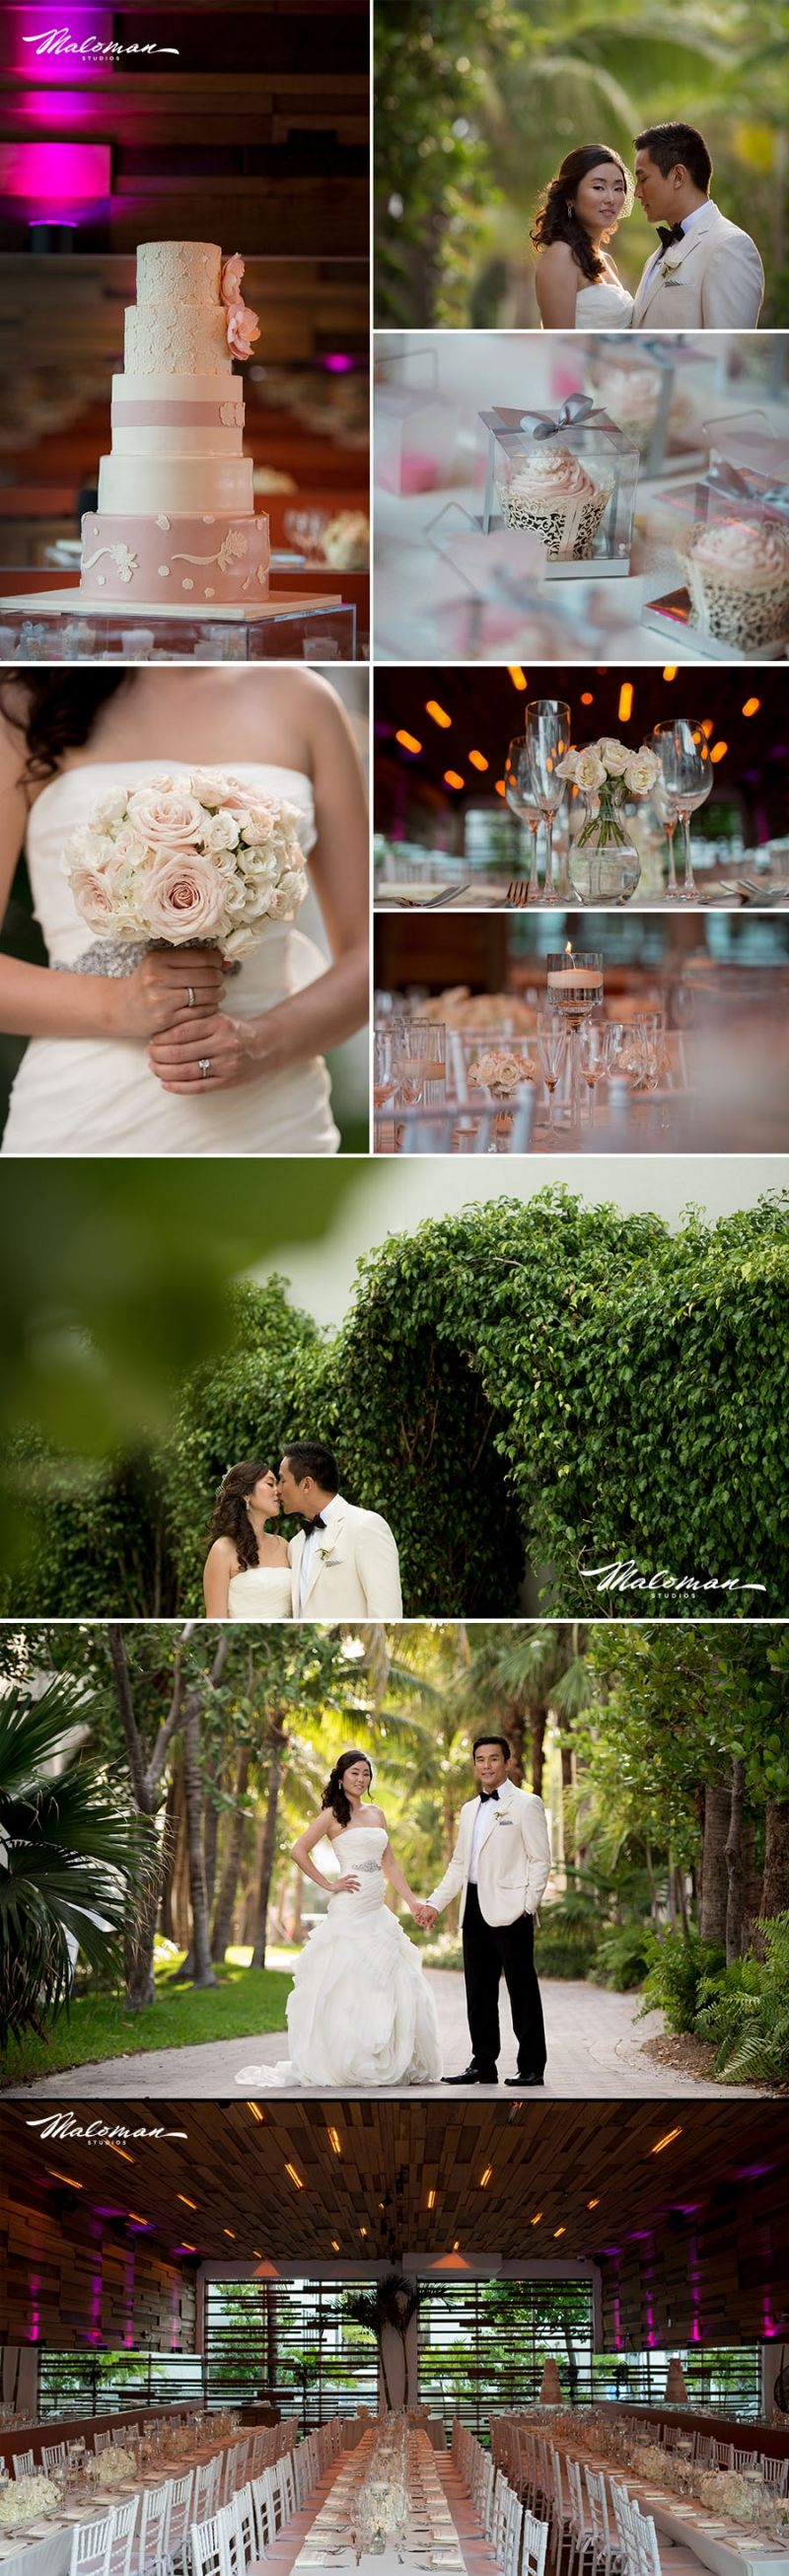 wedding-reception-ideas-4-04232014nz